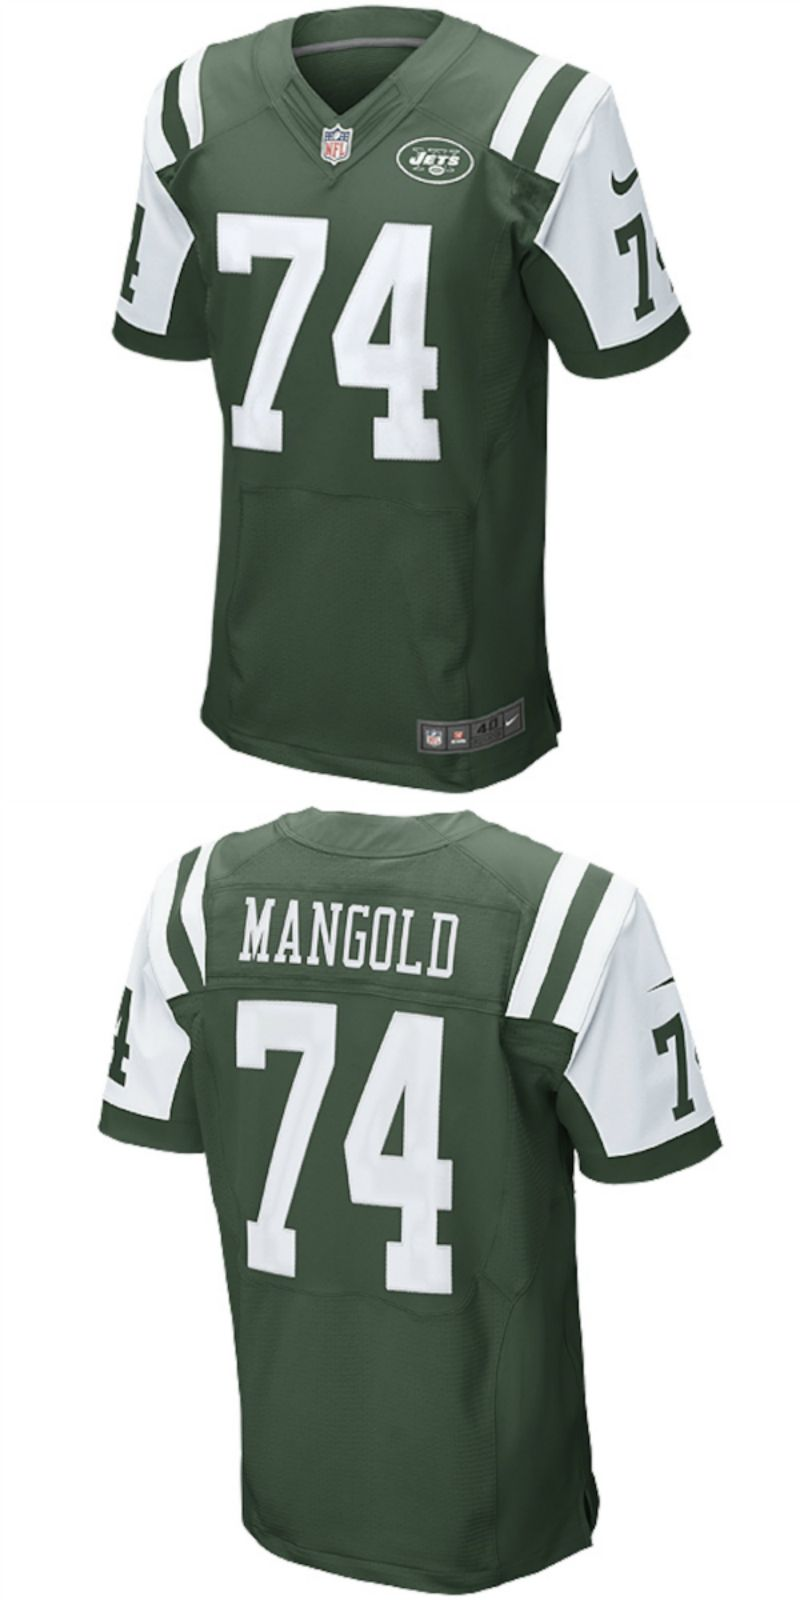 best loved 0330d 6b83a UP TO 70% OFF. Nick Mangold New York Jets Nike Elite Jersey ...